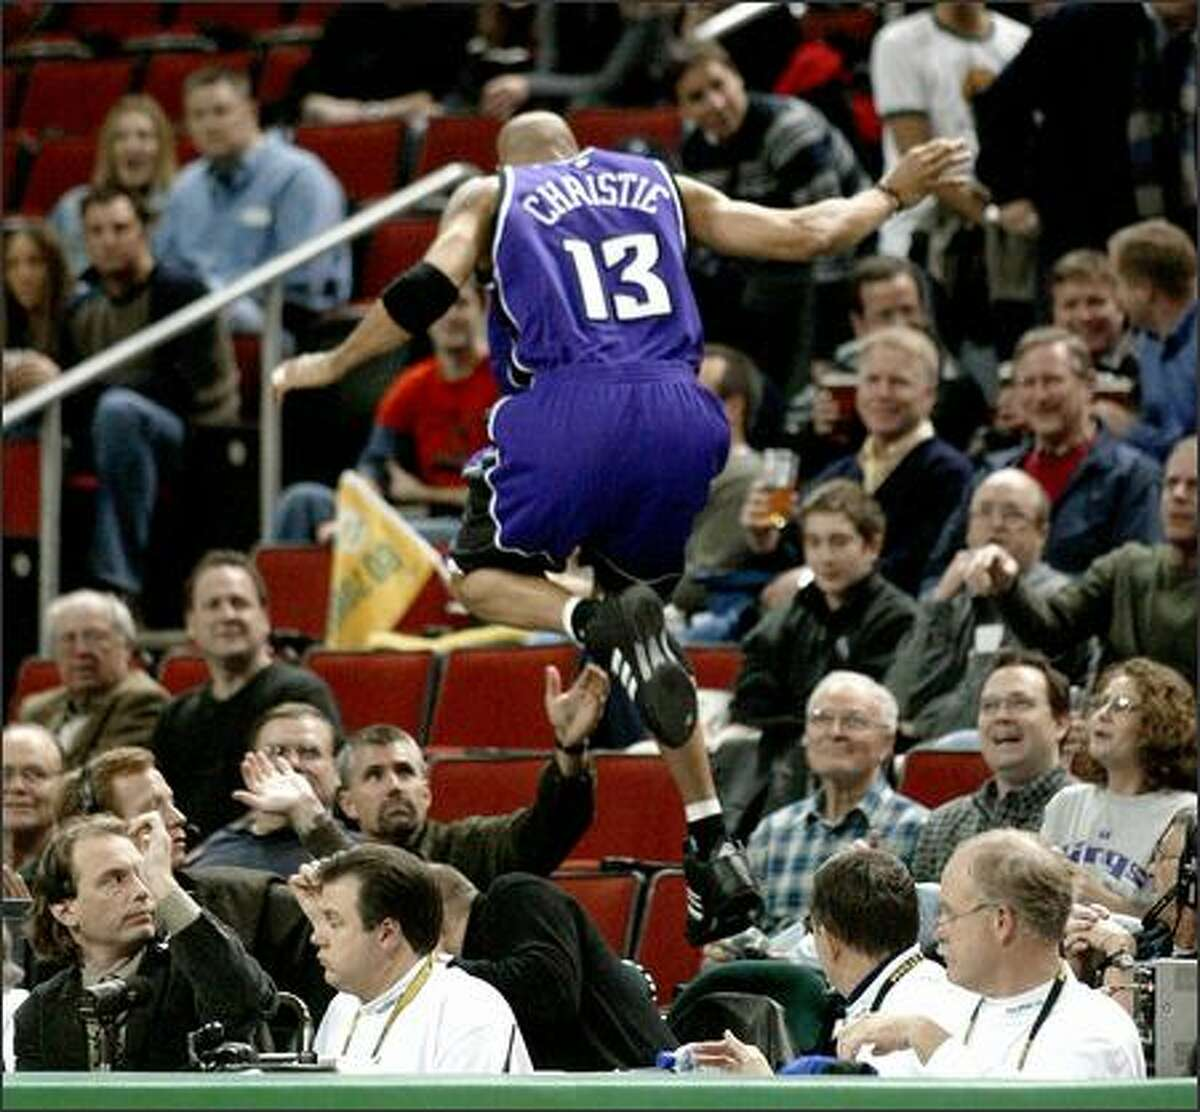 Kings guard Doug Christie, a former Rainier Beach High School standout and Sonics draft pick, leaps into the stand after chasing a loose ball.